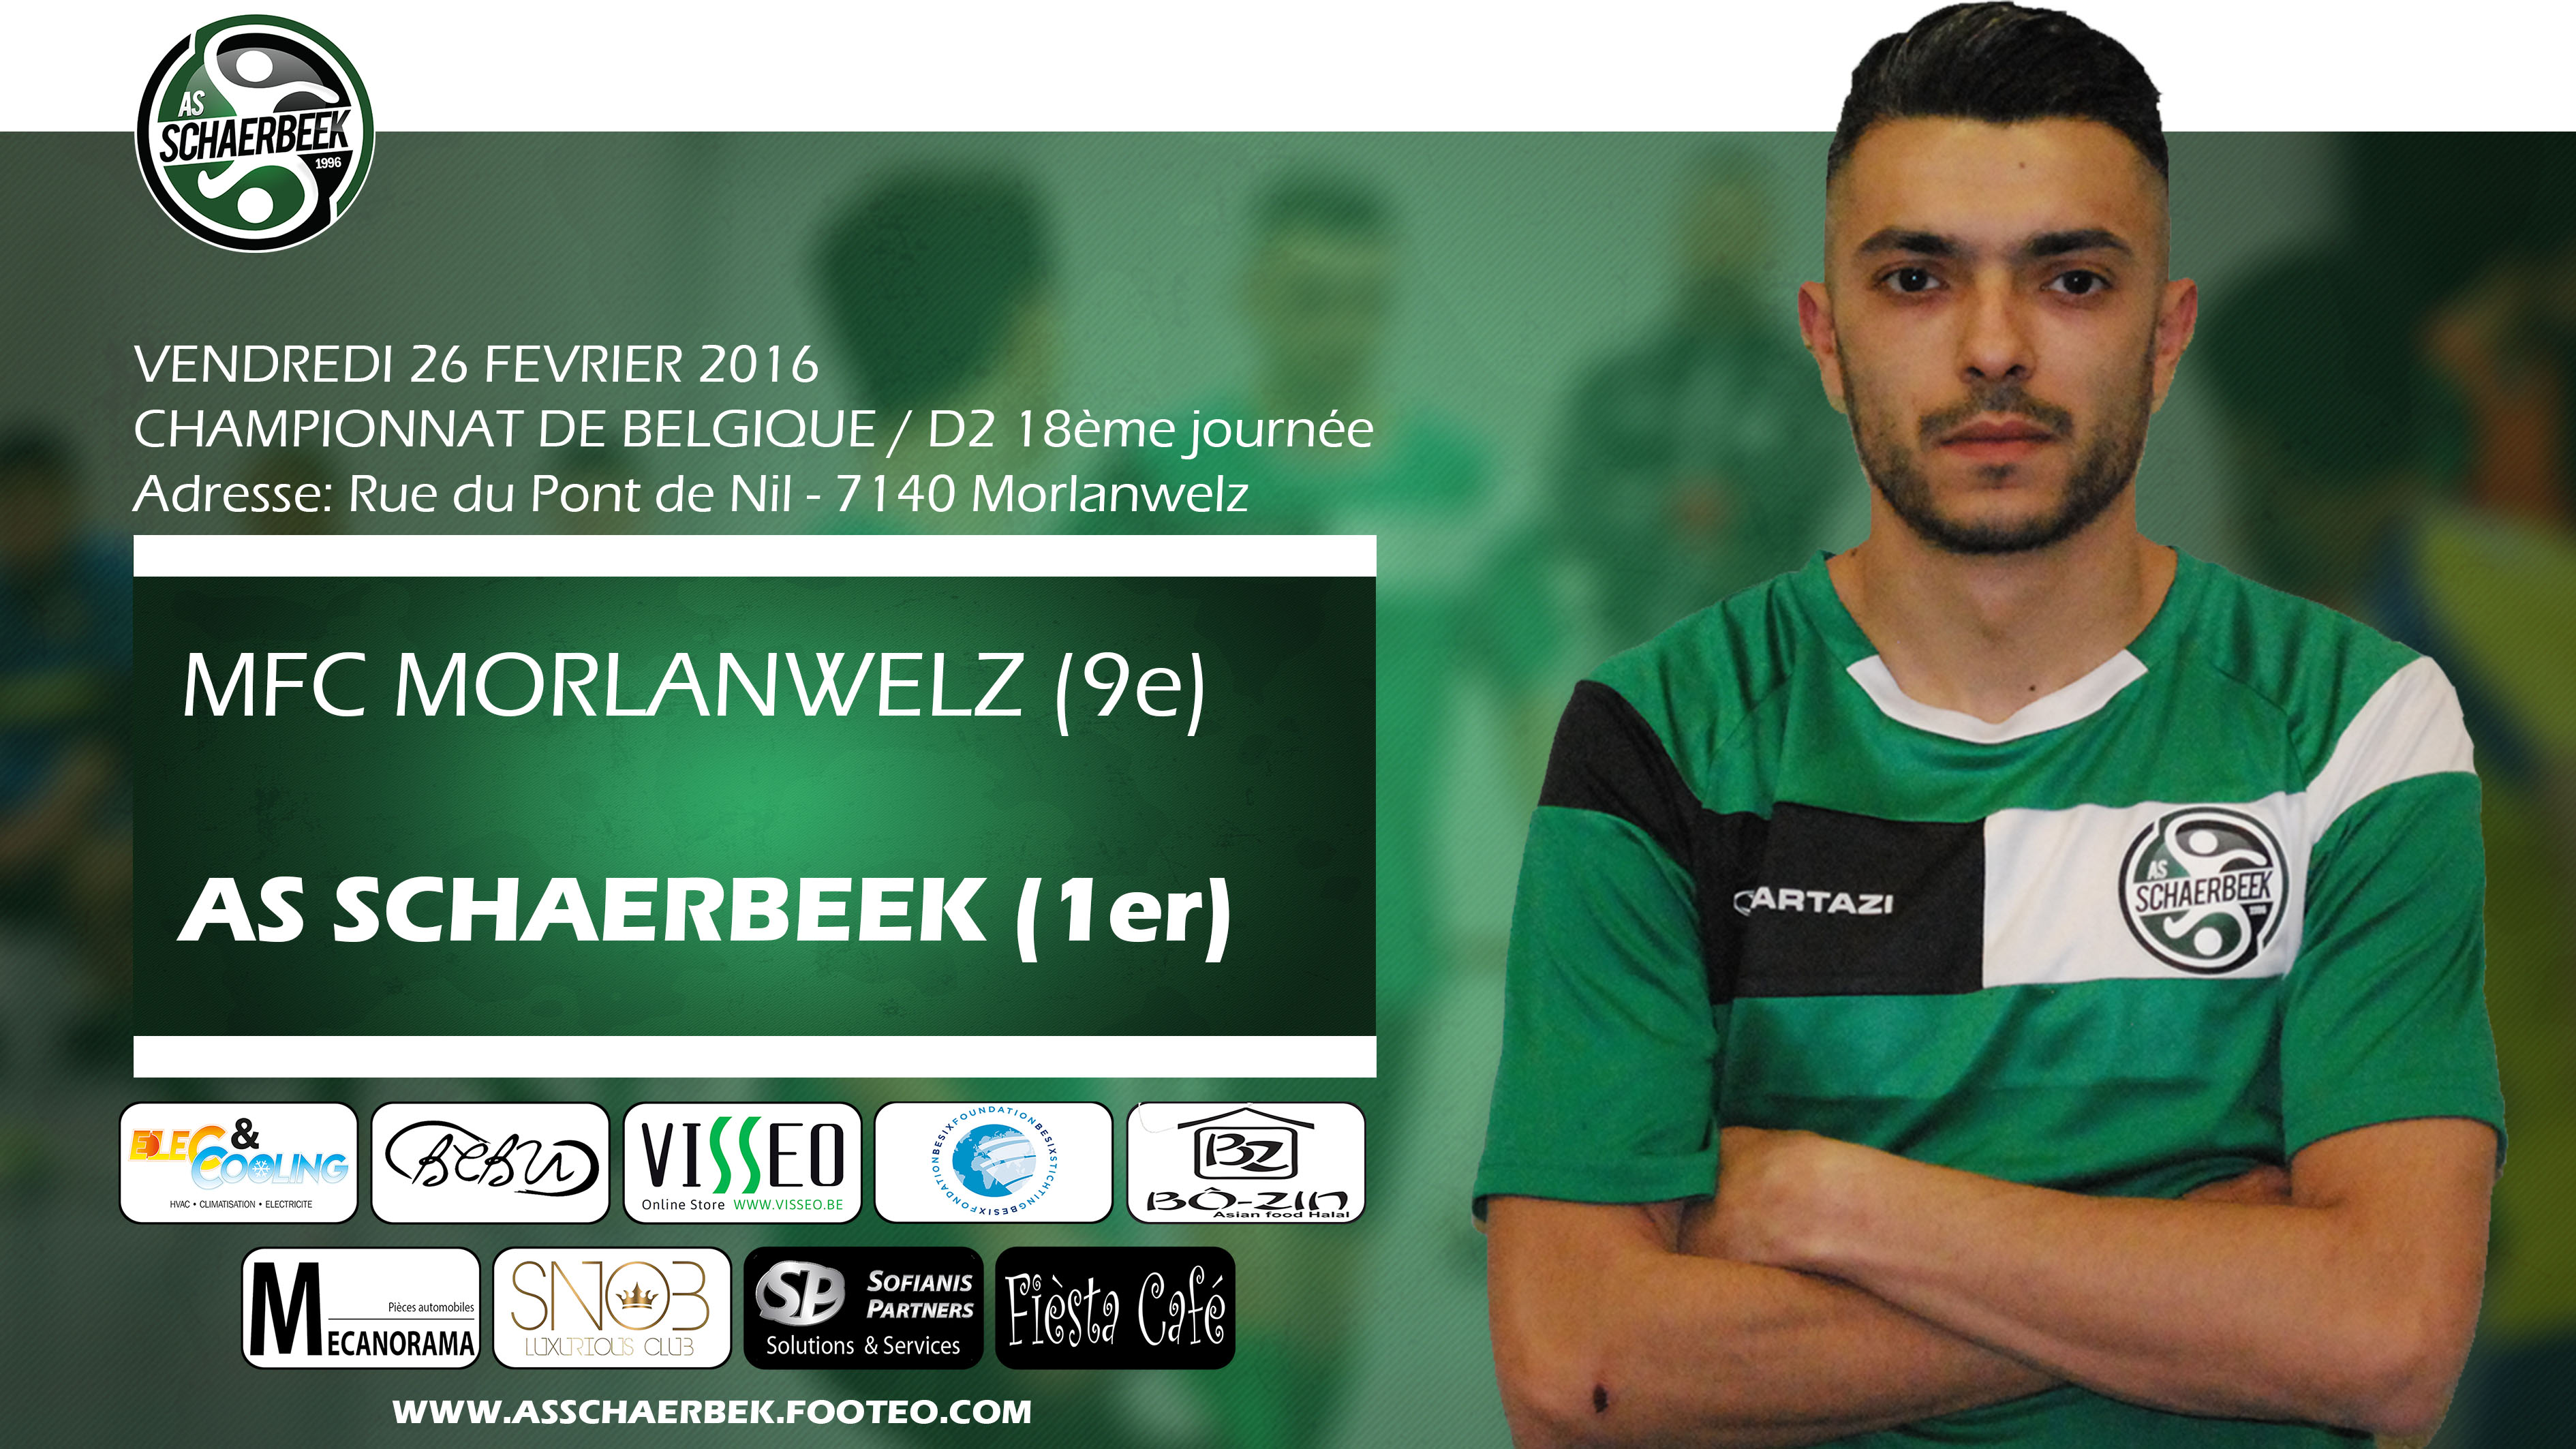 as schaerbeek